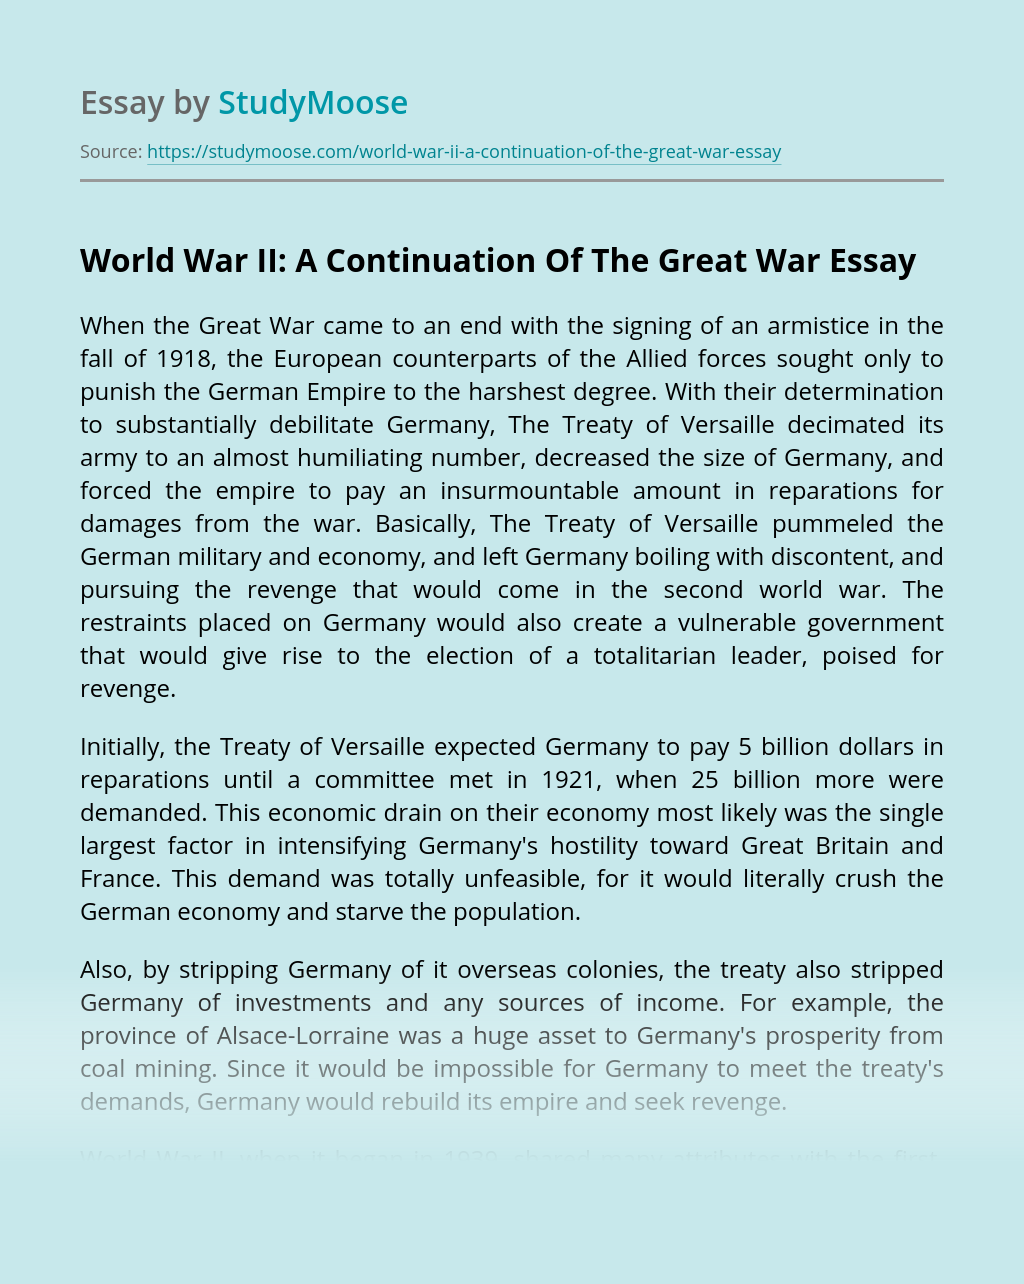 World War II: A Continuation Of The Great War